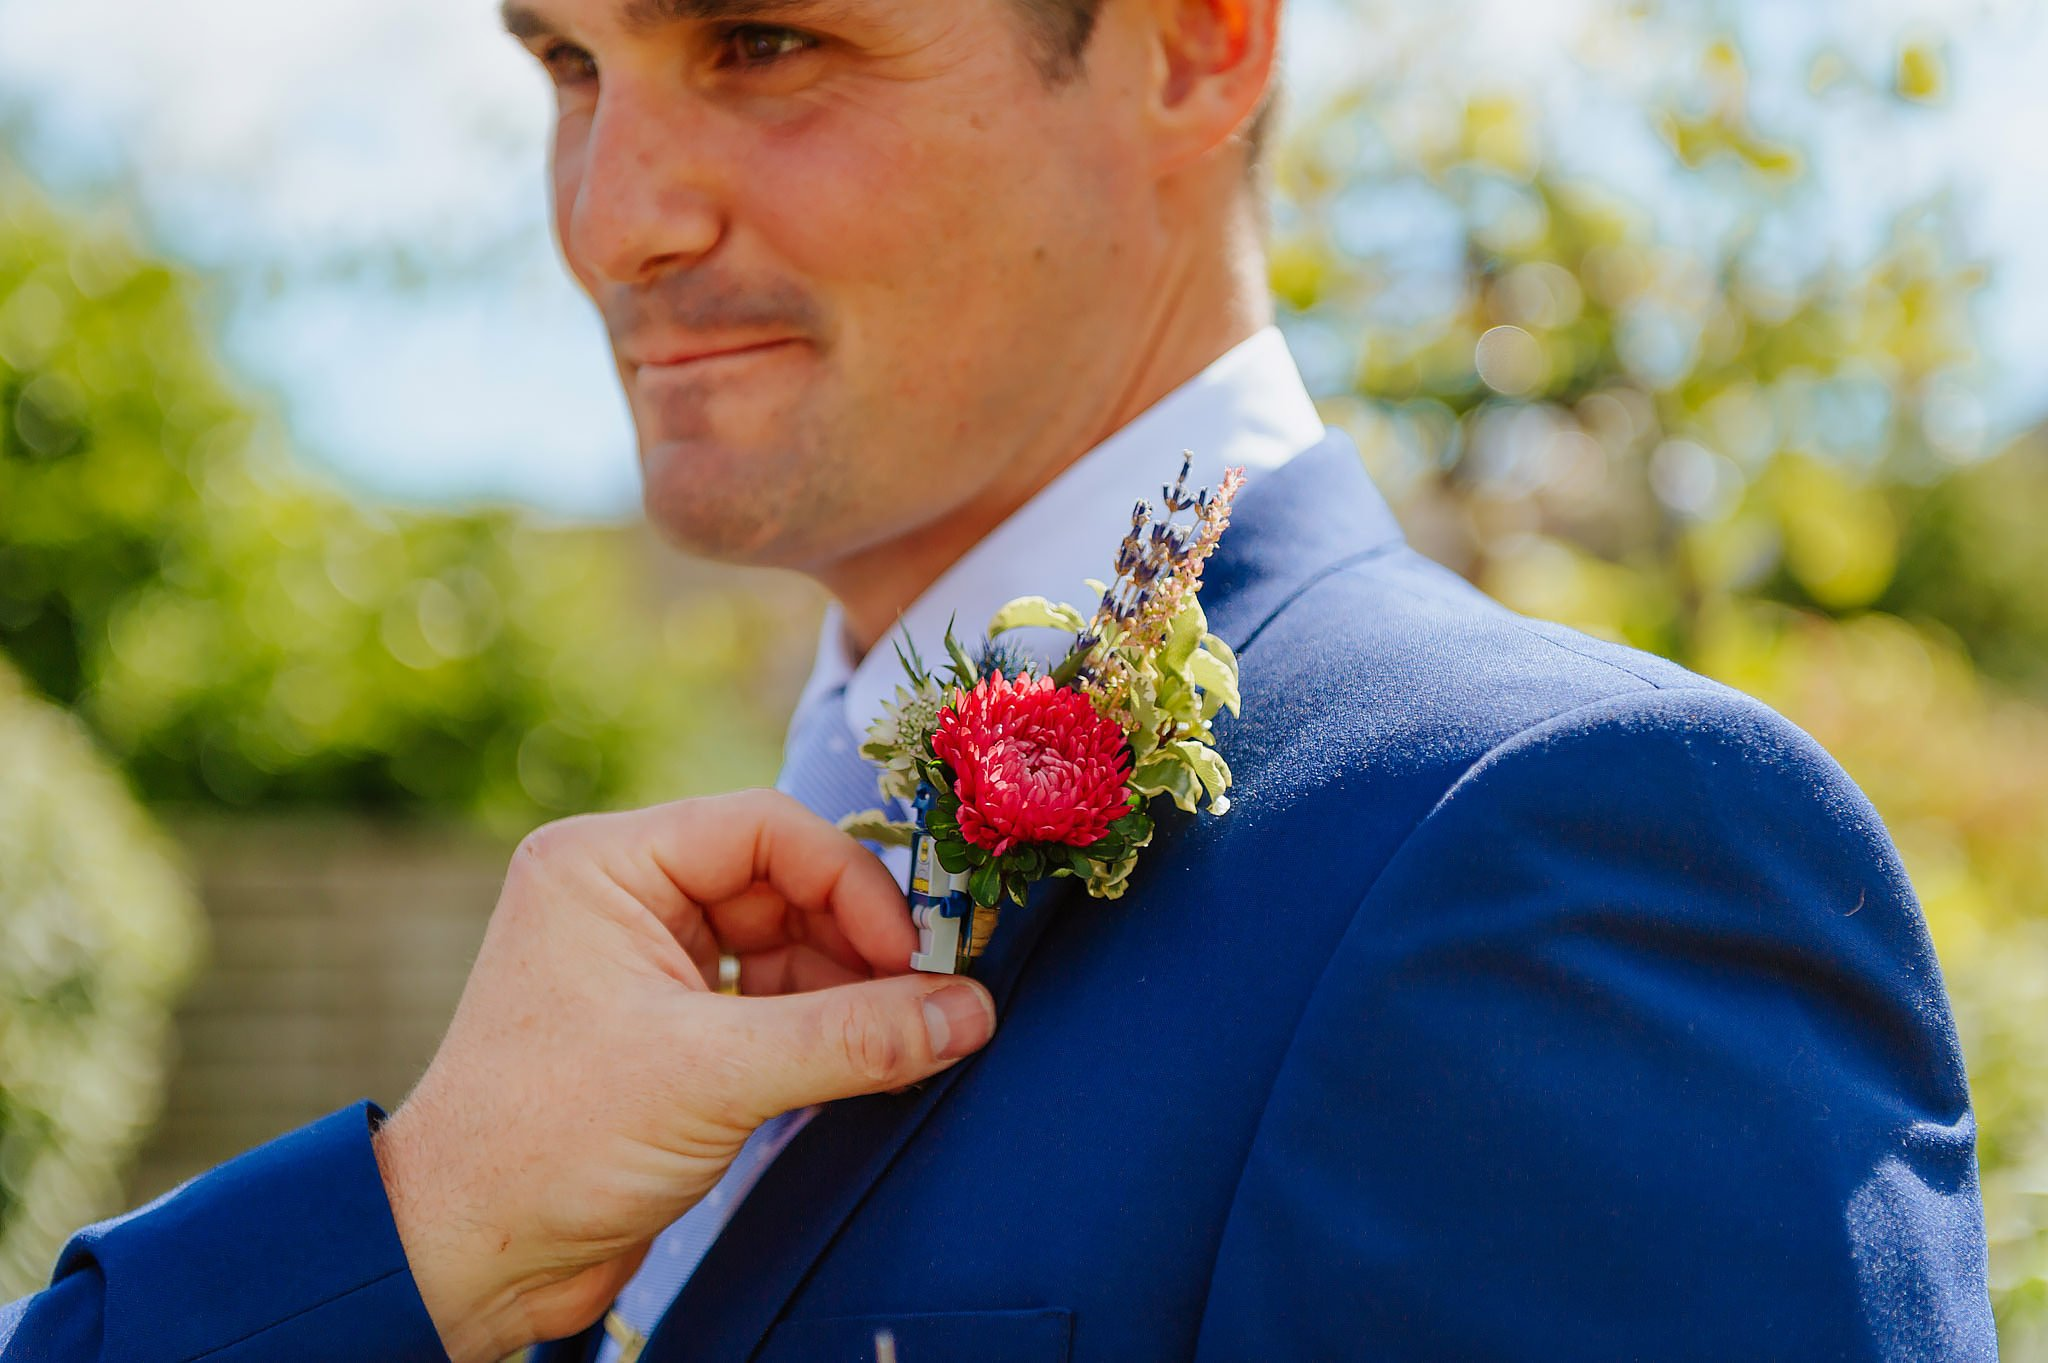 Wedding photography at Hellens Manor in Herefordshire, West Midlands | Shelley + Ian 12